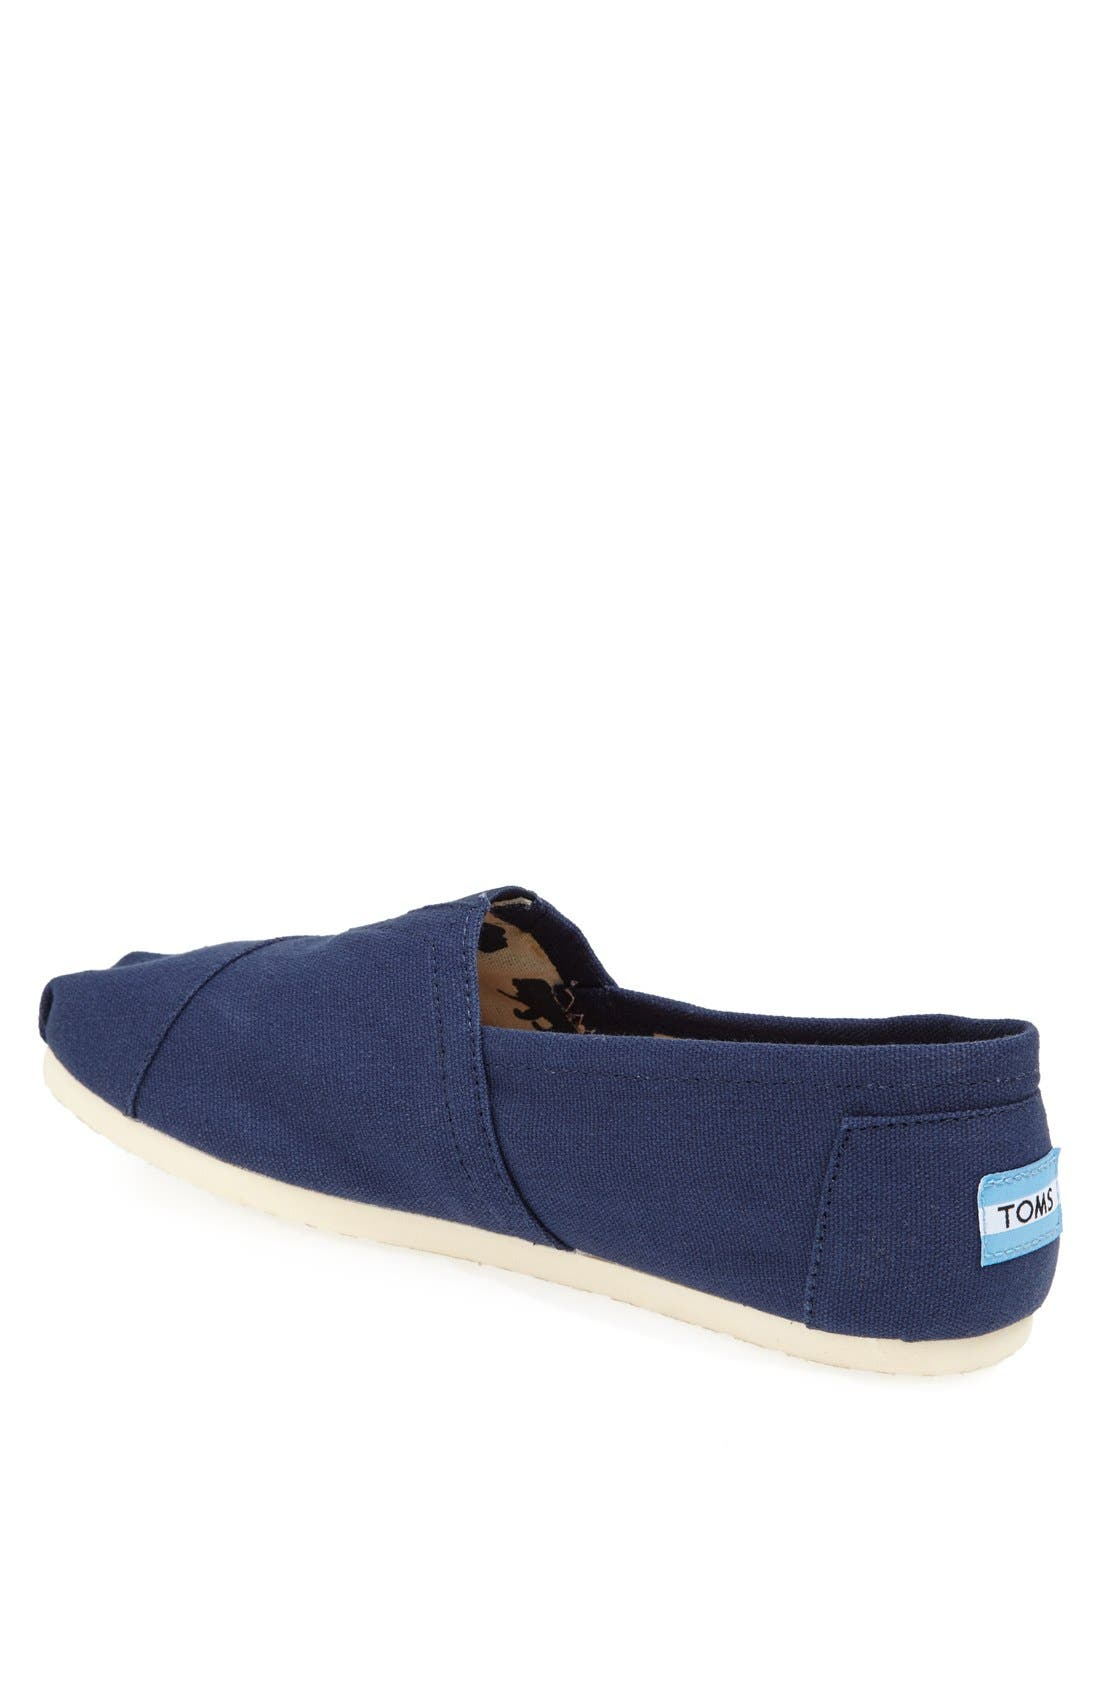 Alternate Image 2  - TOMS 'Classic' Canvas Slip-On   (Men)